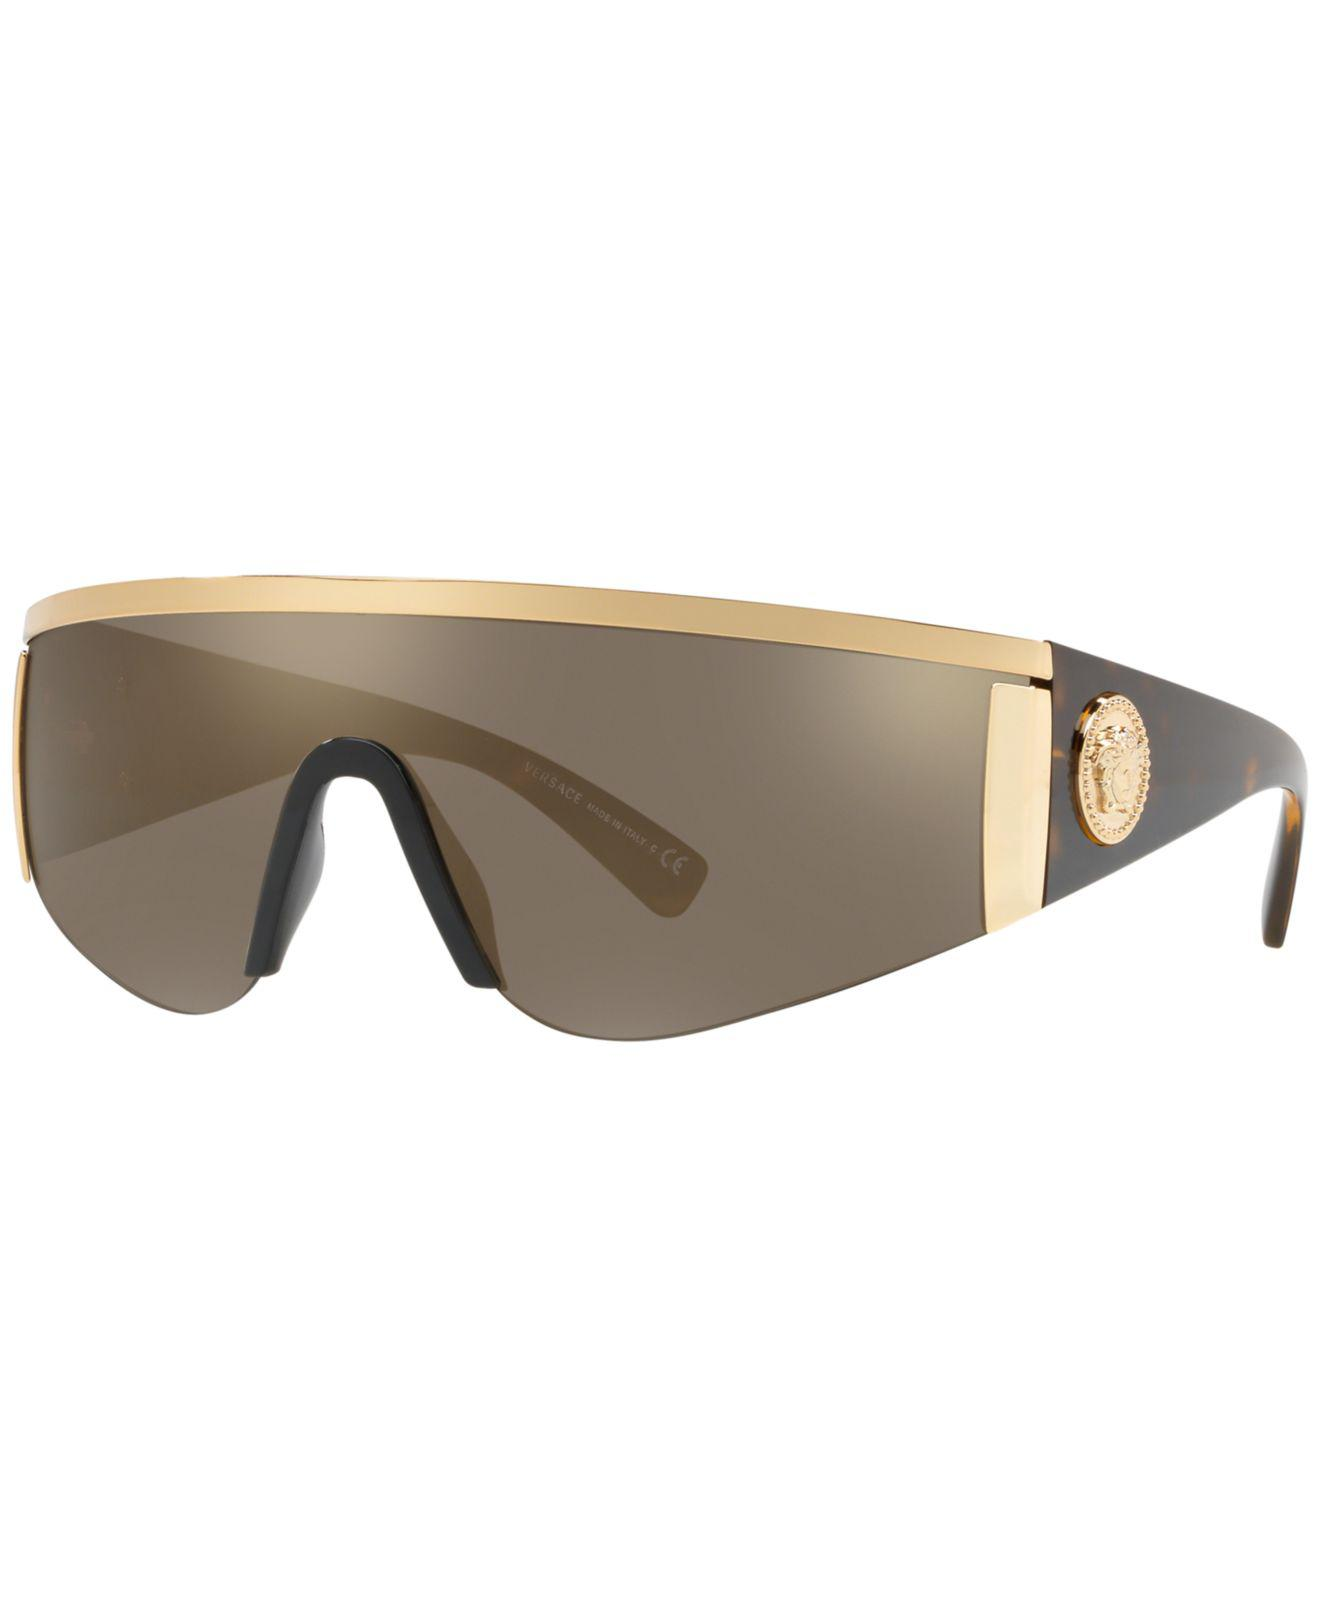 c8a5e29c6ba7 Lyst - Versace Ve2197 Shield Sunglasses in Brown for Men